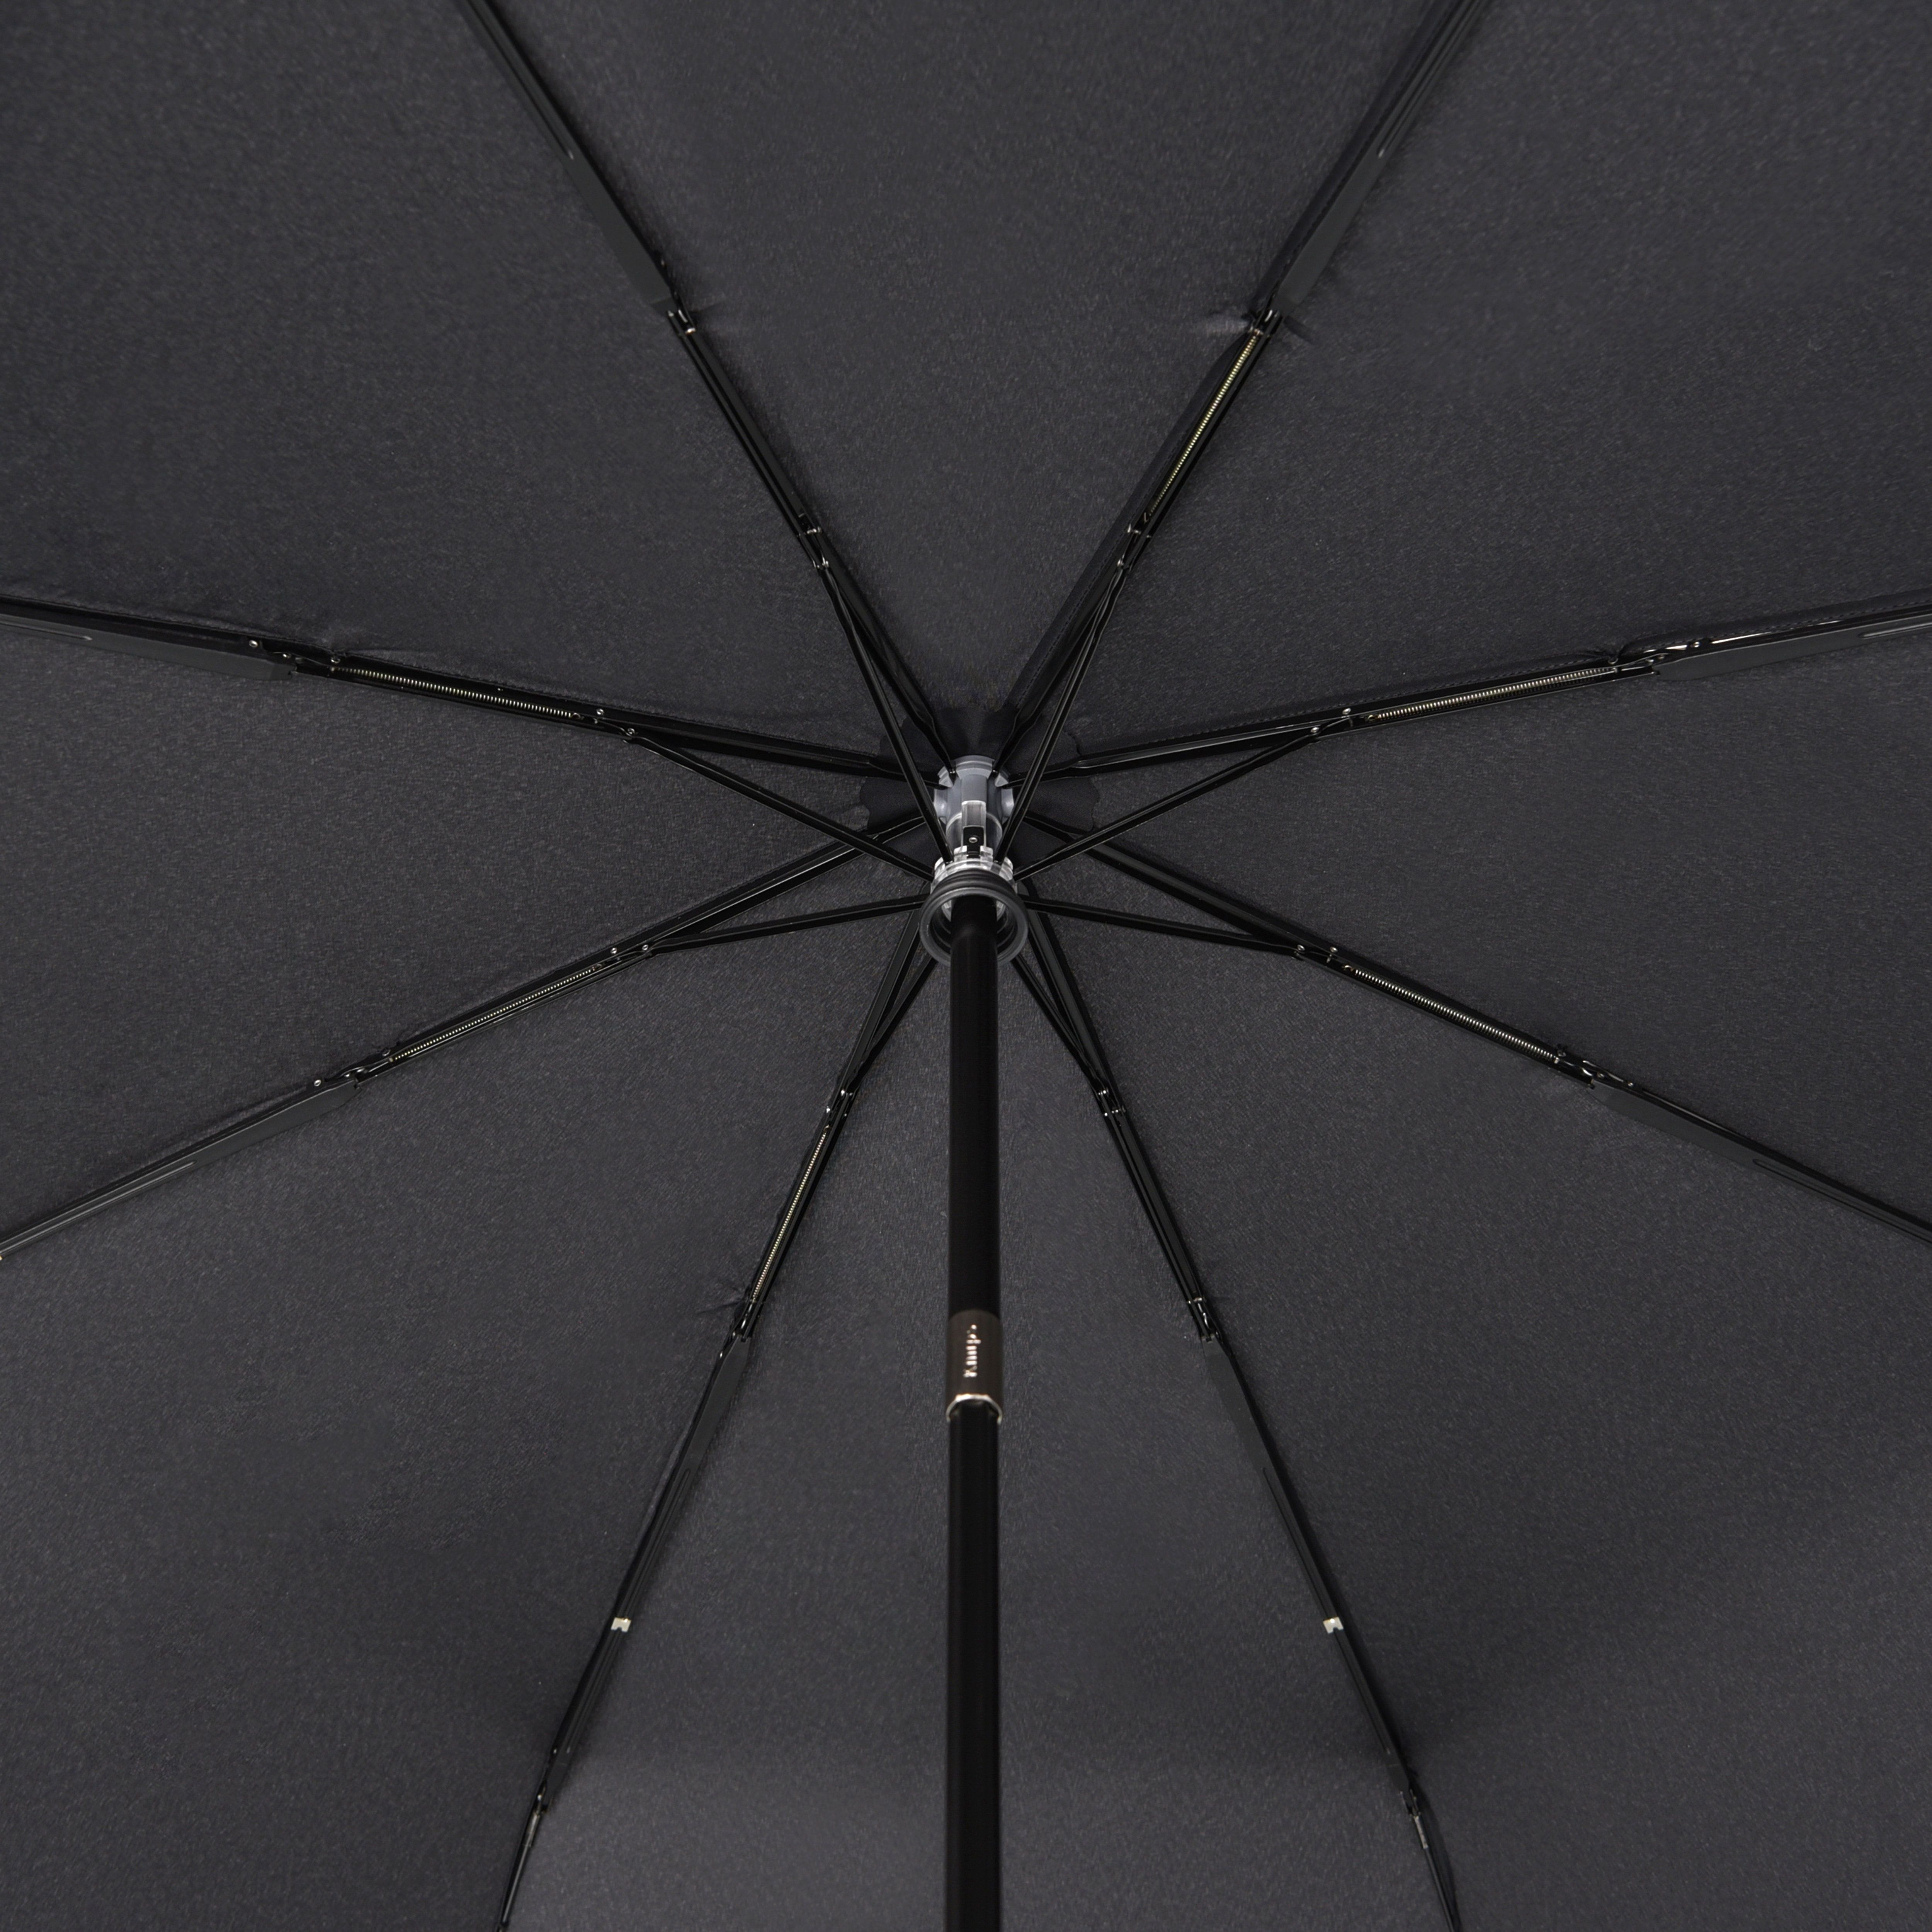 Knirps Umbrella T.400 extra large duomatic - foto 4